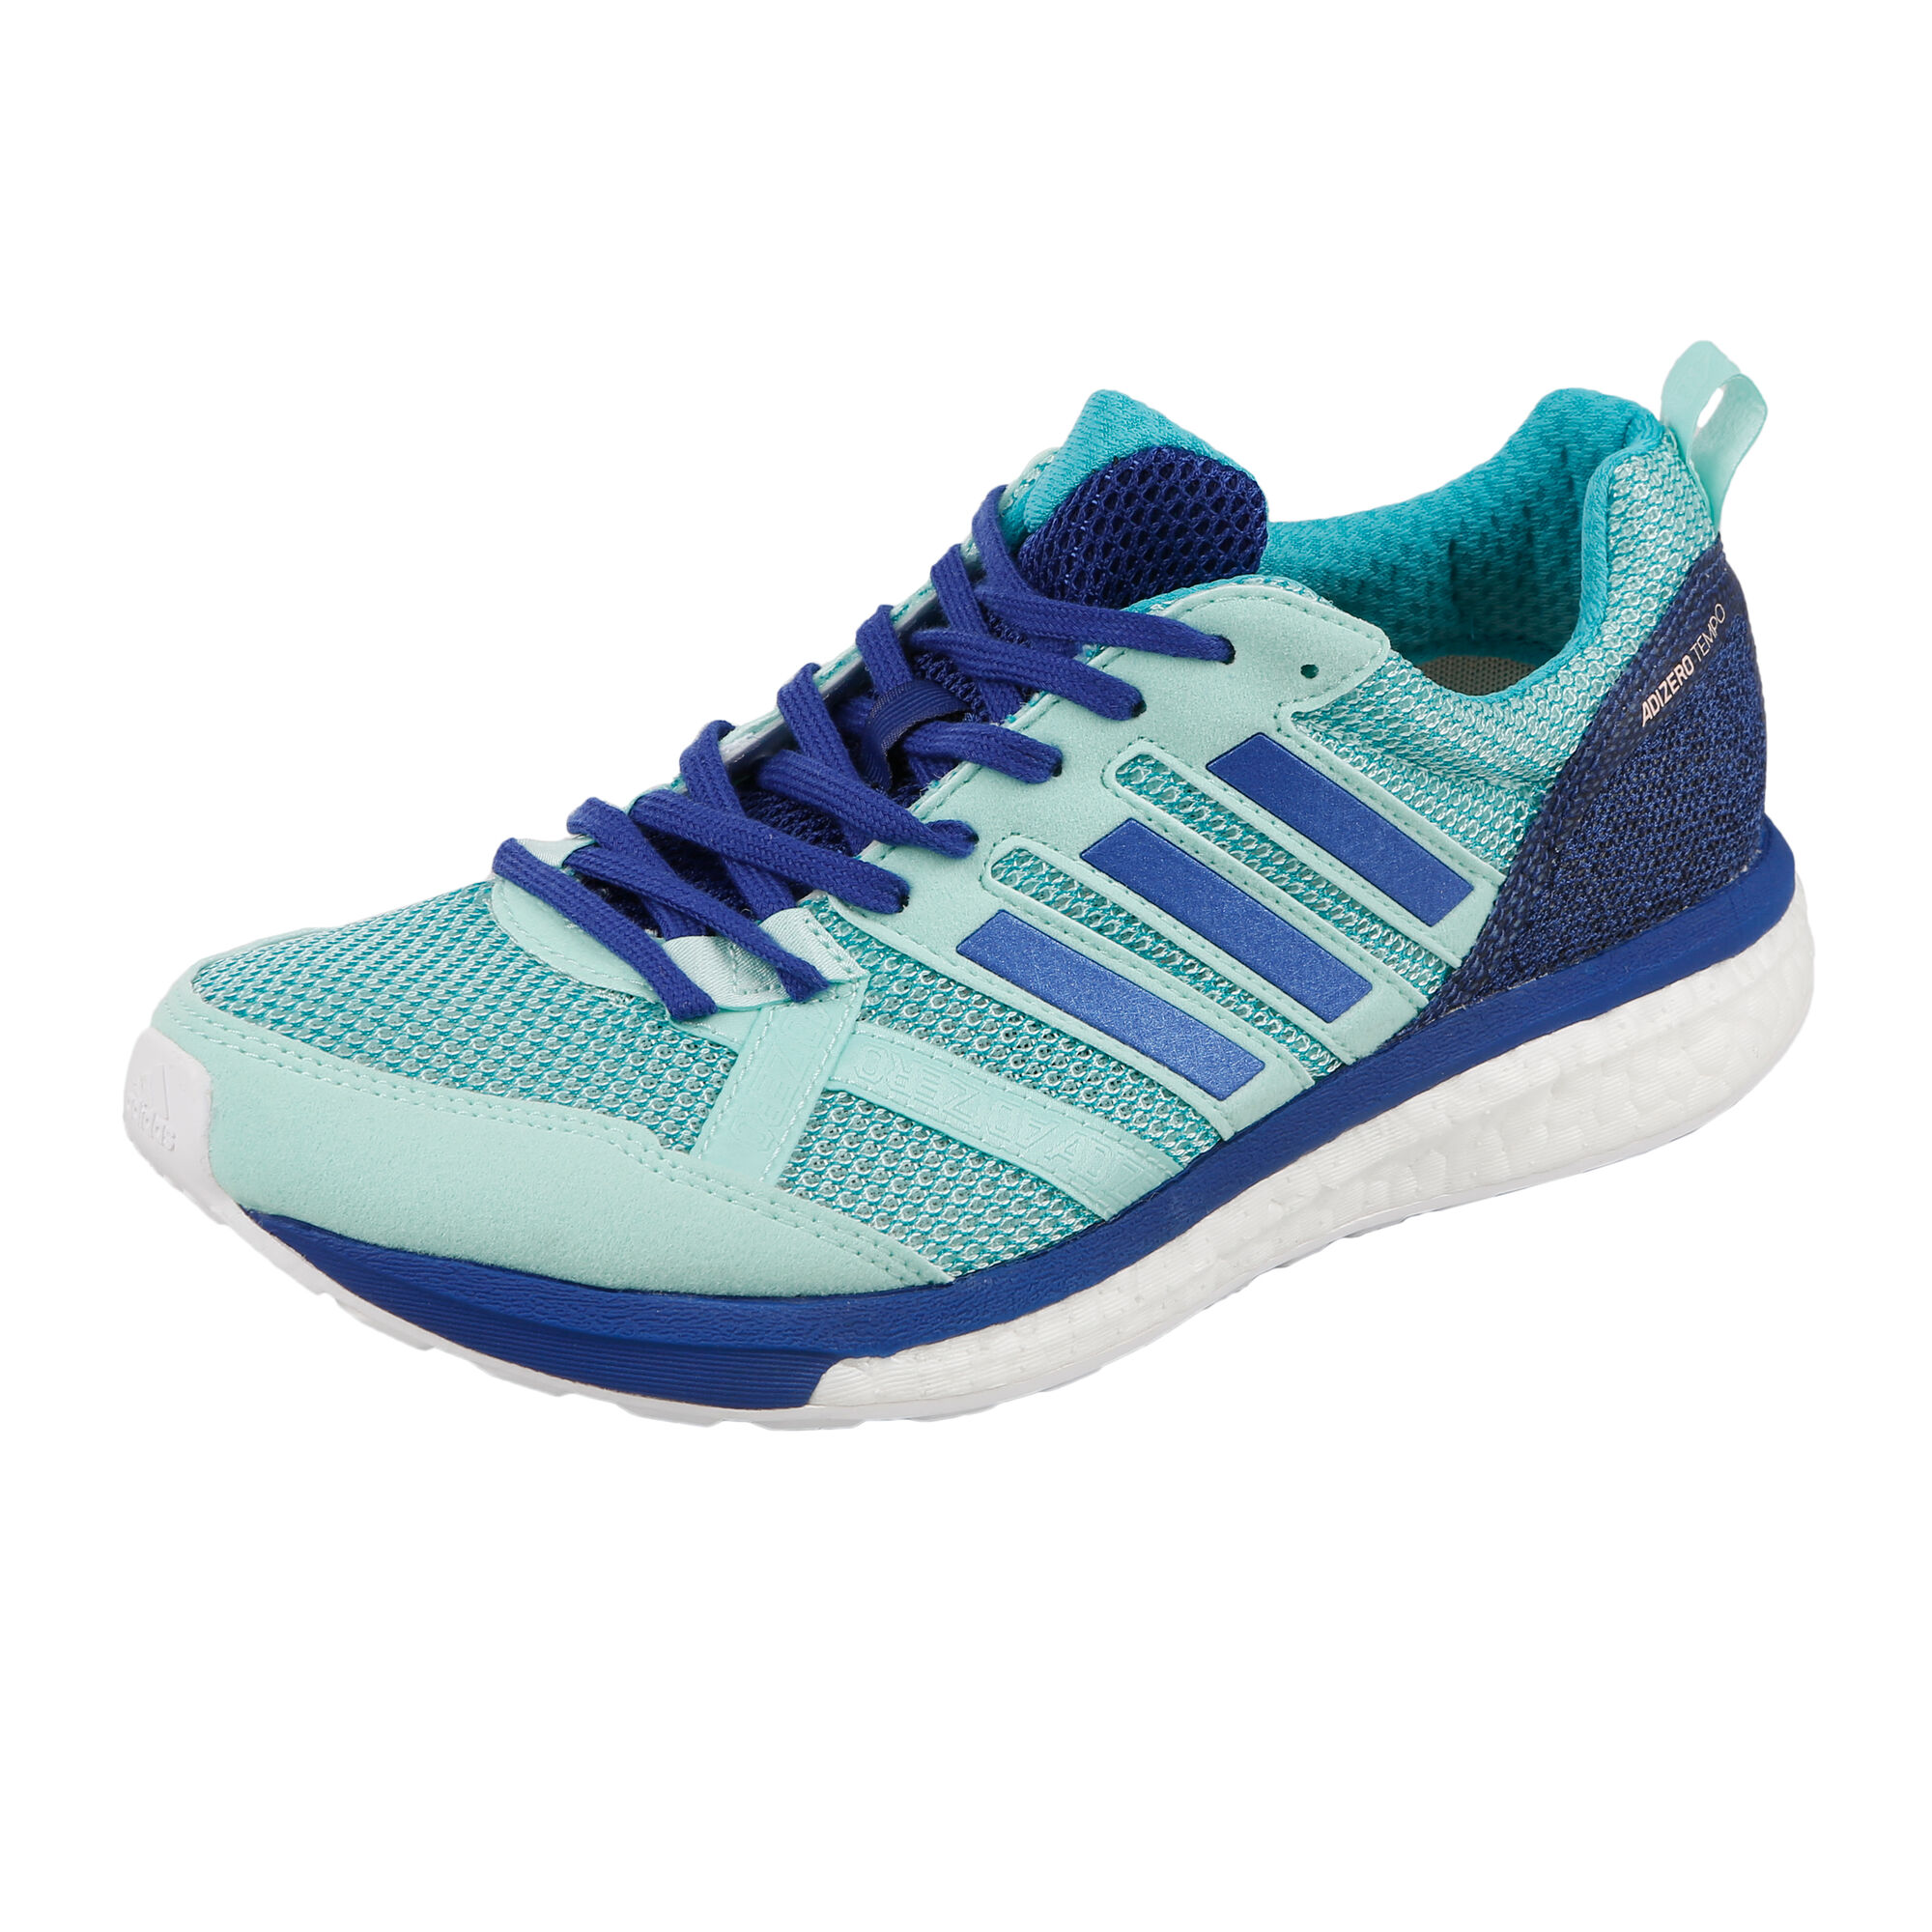 quality design d94b0 bf783 adidas Adizero Tempo 9 Competition Running Shoe Women - Mint, Blue